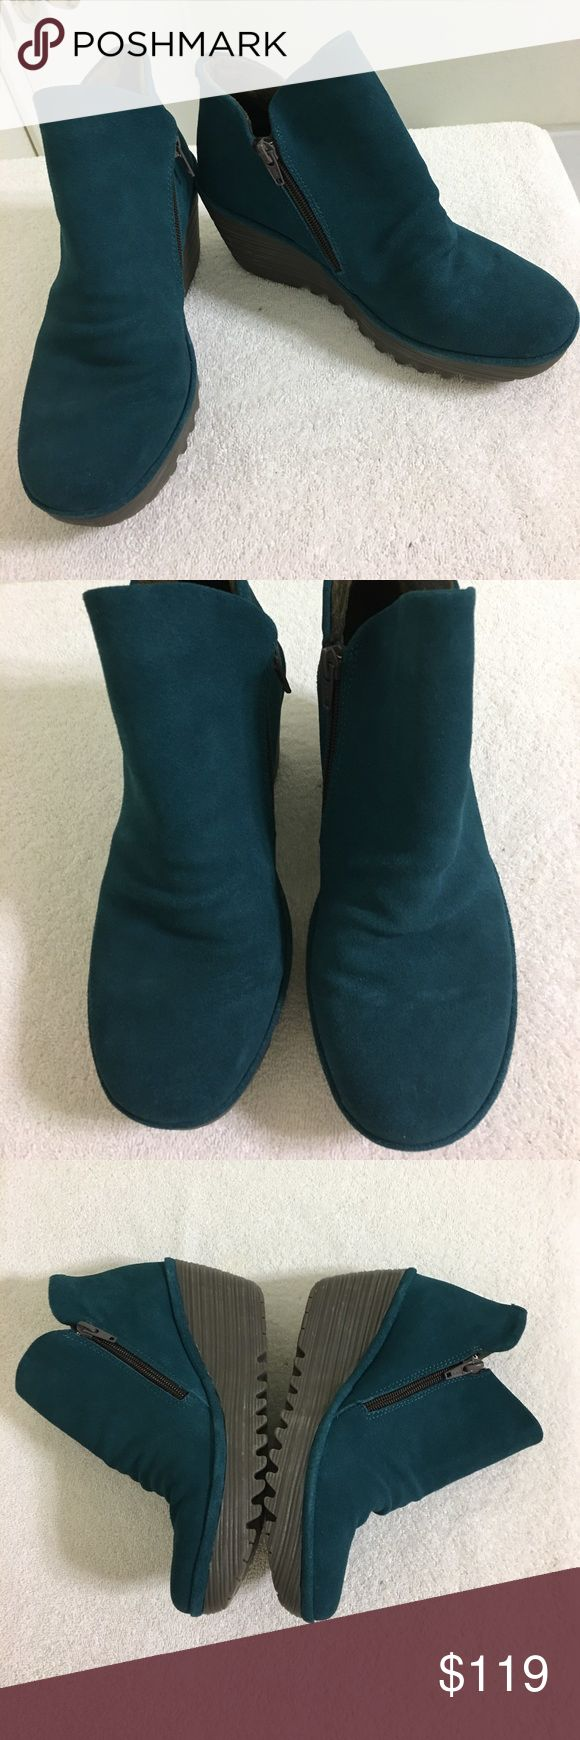 NEW FLY LONDON 'Yip' Teal Wedge Suede Ankle Bootie NEW FLY LONDON 'Yip' Teal blue Wedge Suede Ankle Booties for Sale.  Size 37 (Fit like a 6  - 6.5 rather than 6.5 - 7). Super cute & great color!  Selling because they are a bit too small for me.  New without tags.  Purchased from Nordtrom Rack.  They have been tried on, however still new in great condition.  Very cushiony! Fly London Shoes Ankle Boots & Booties